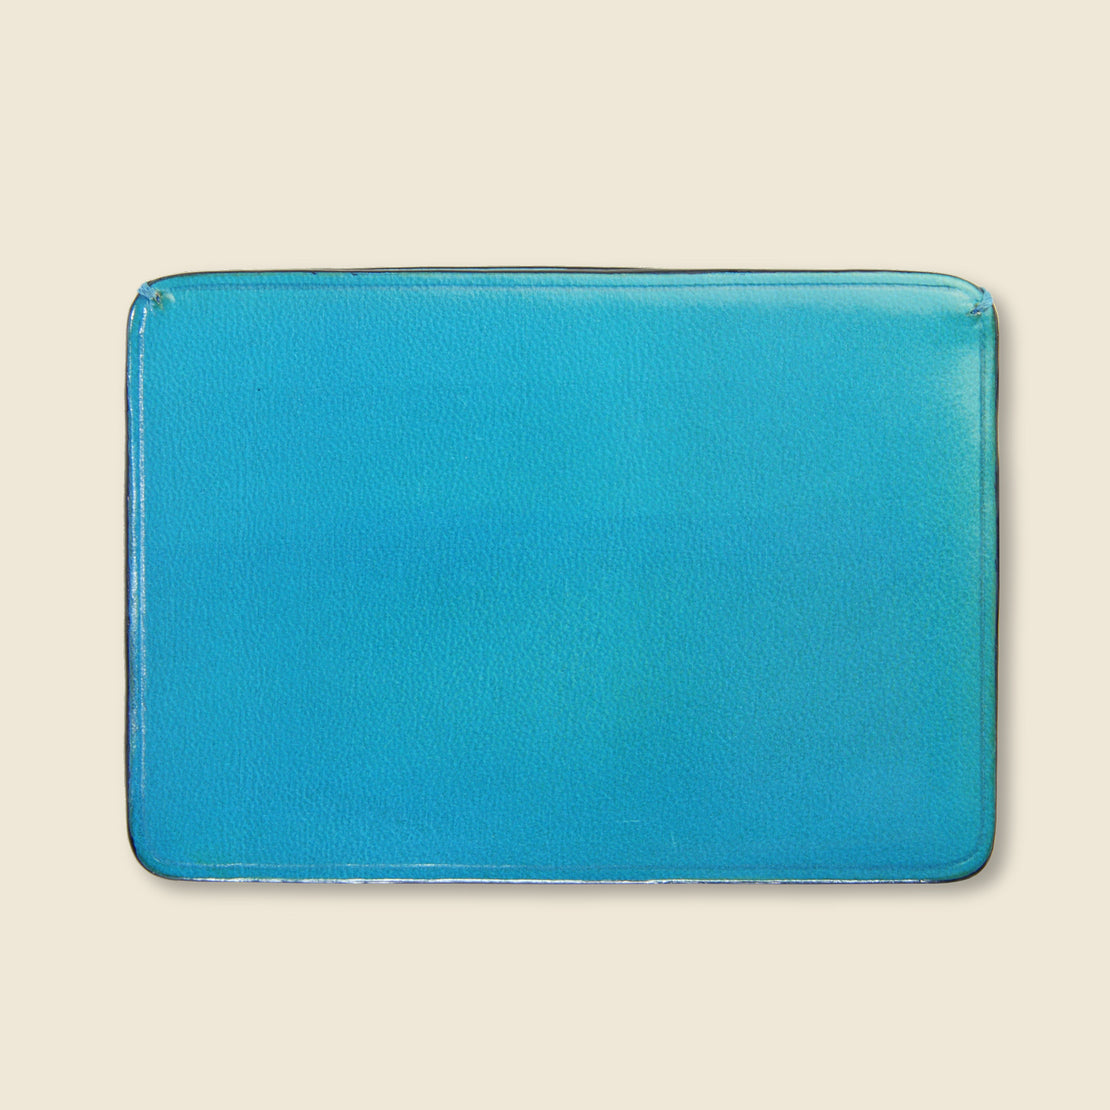 Credit Card Case - Cadet Blue - Il Bussetto - STAG Provisions - Accessories - Wallets